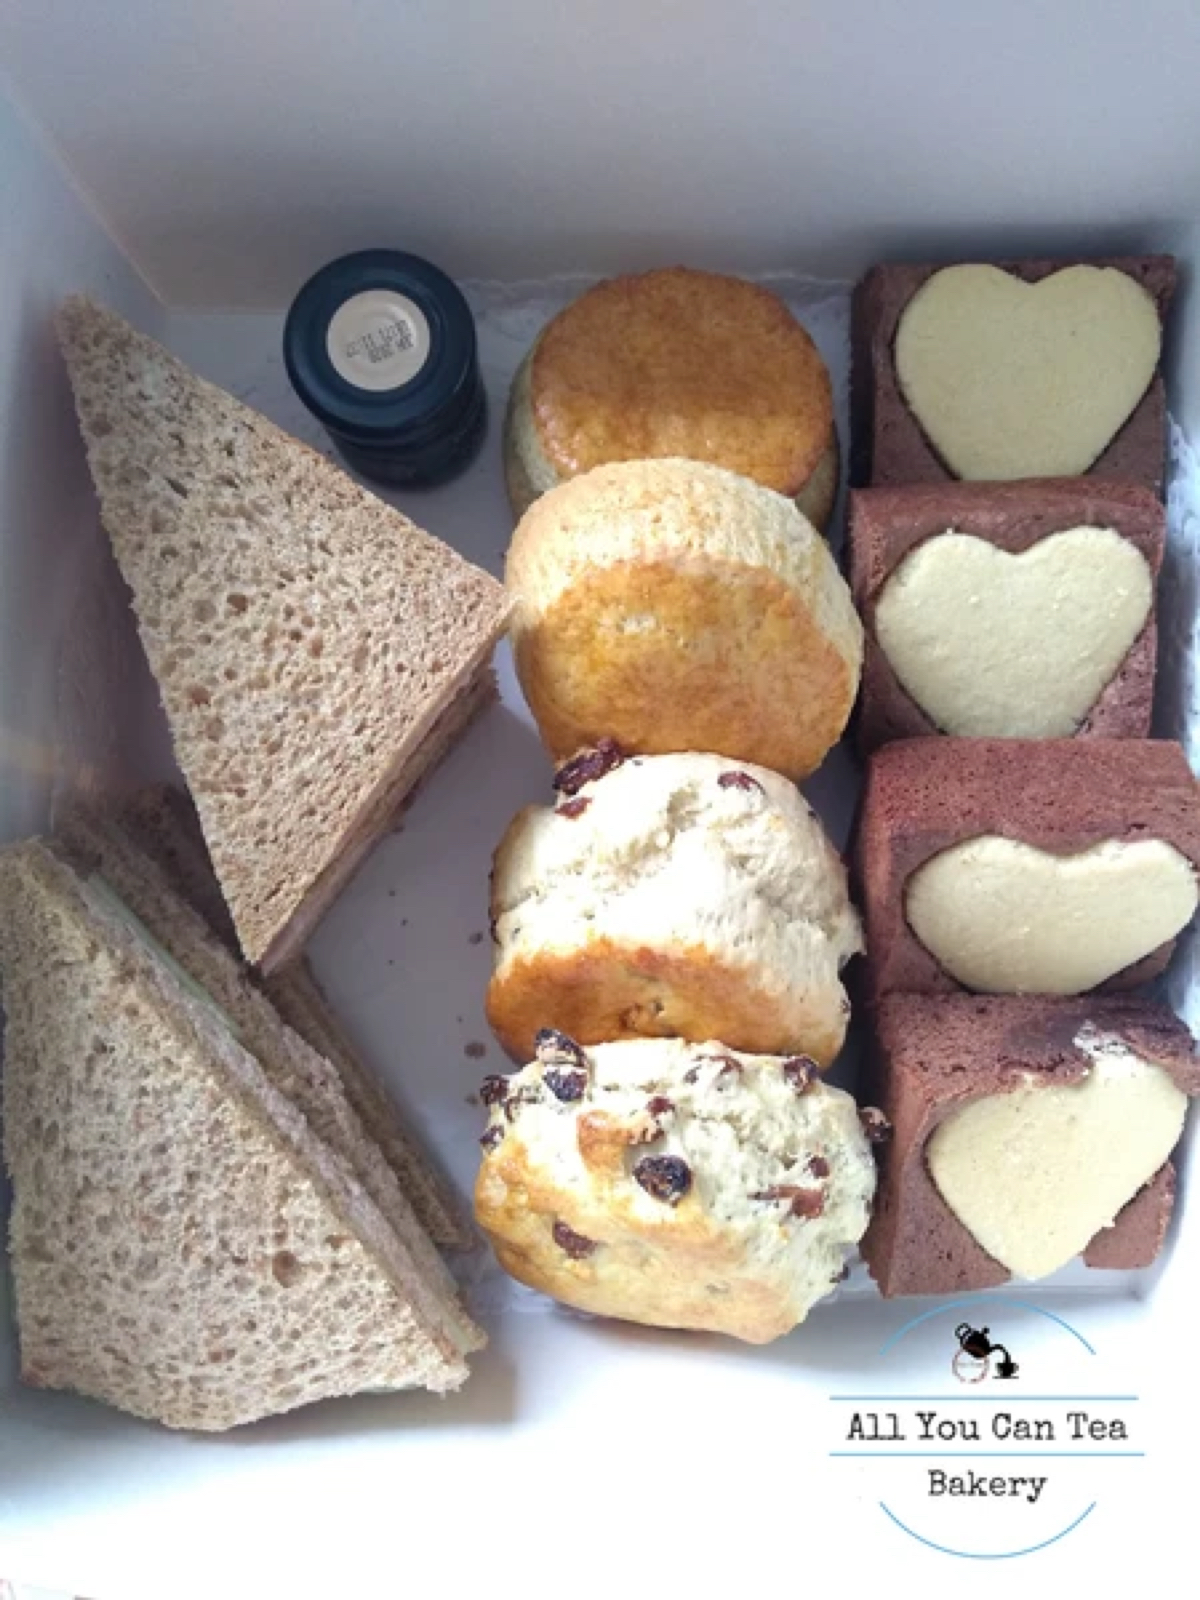 All You Can Tea afternoon tea in a box